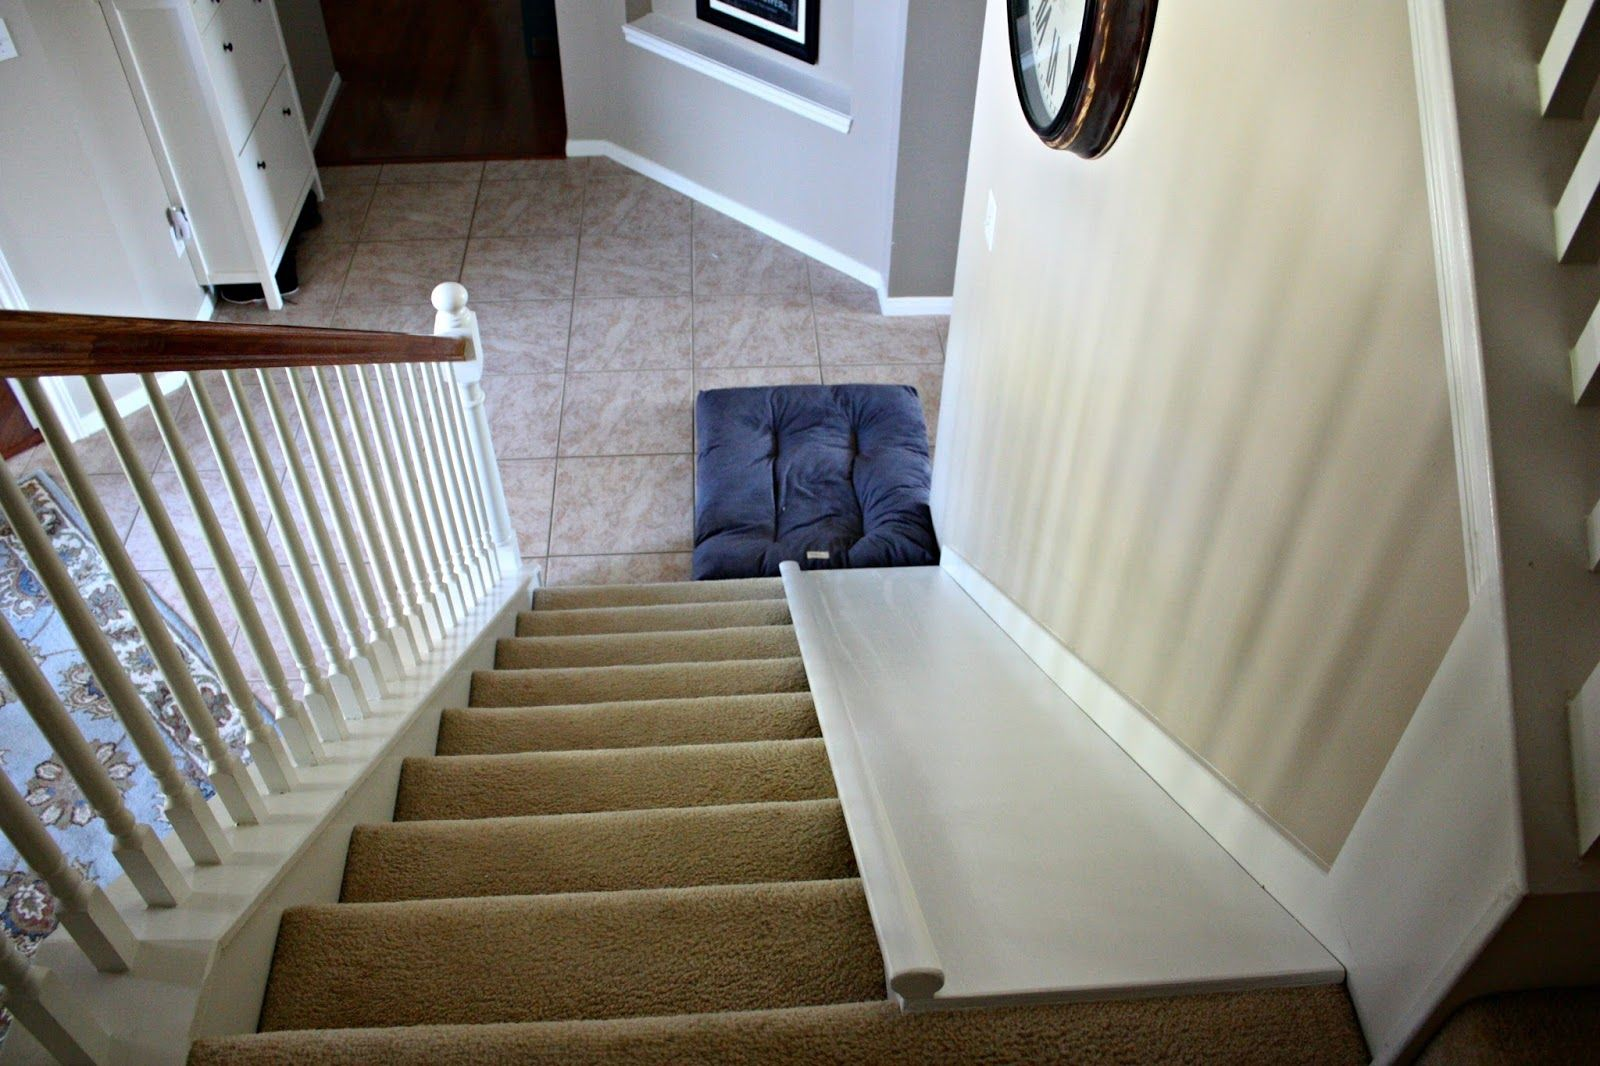 Diy Stair Slide Or How To Add A Slide To Your Stairs Diy Stairs